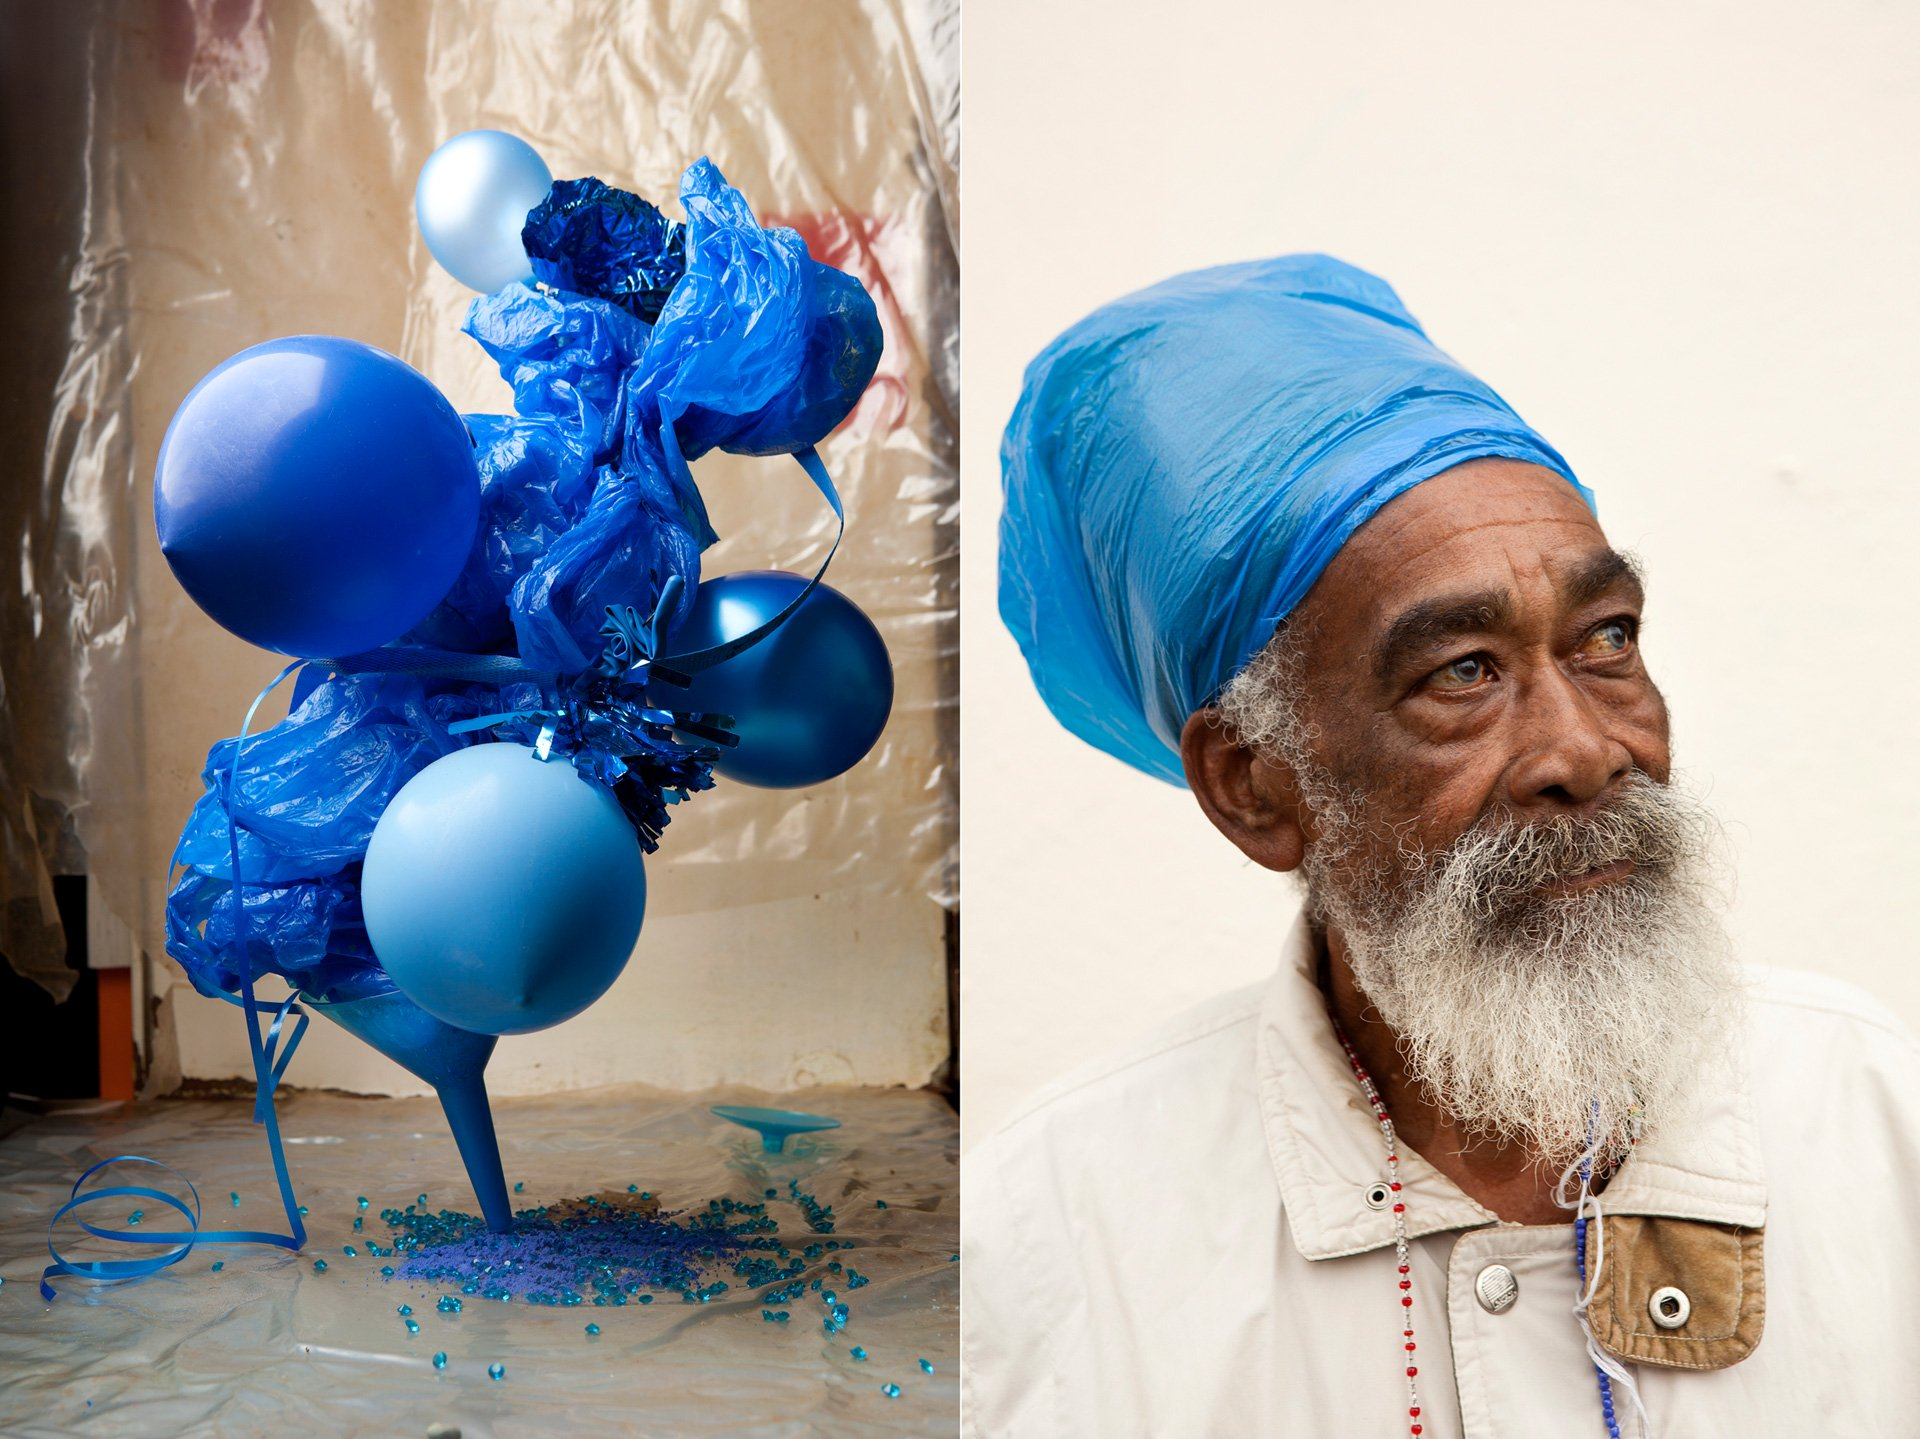 blue sculpture and blue eyed old man photographed by lorenzo vitturi